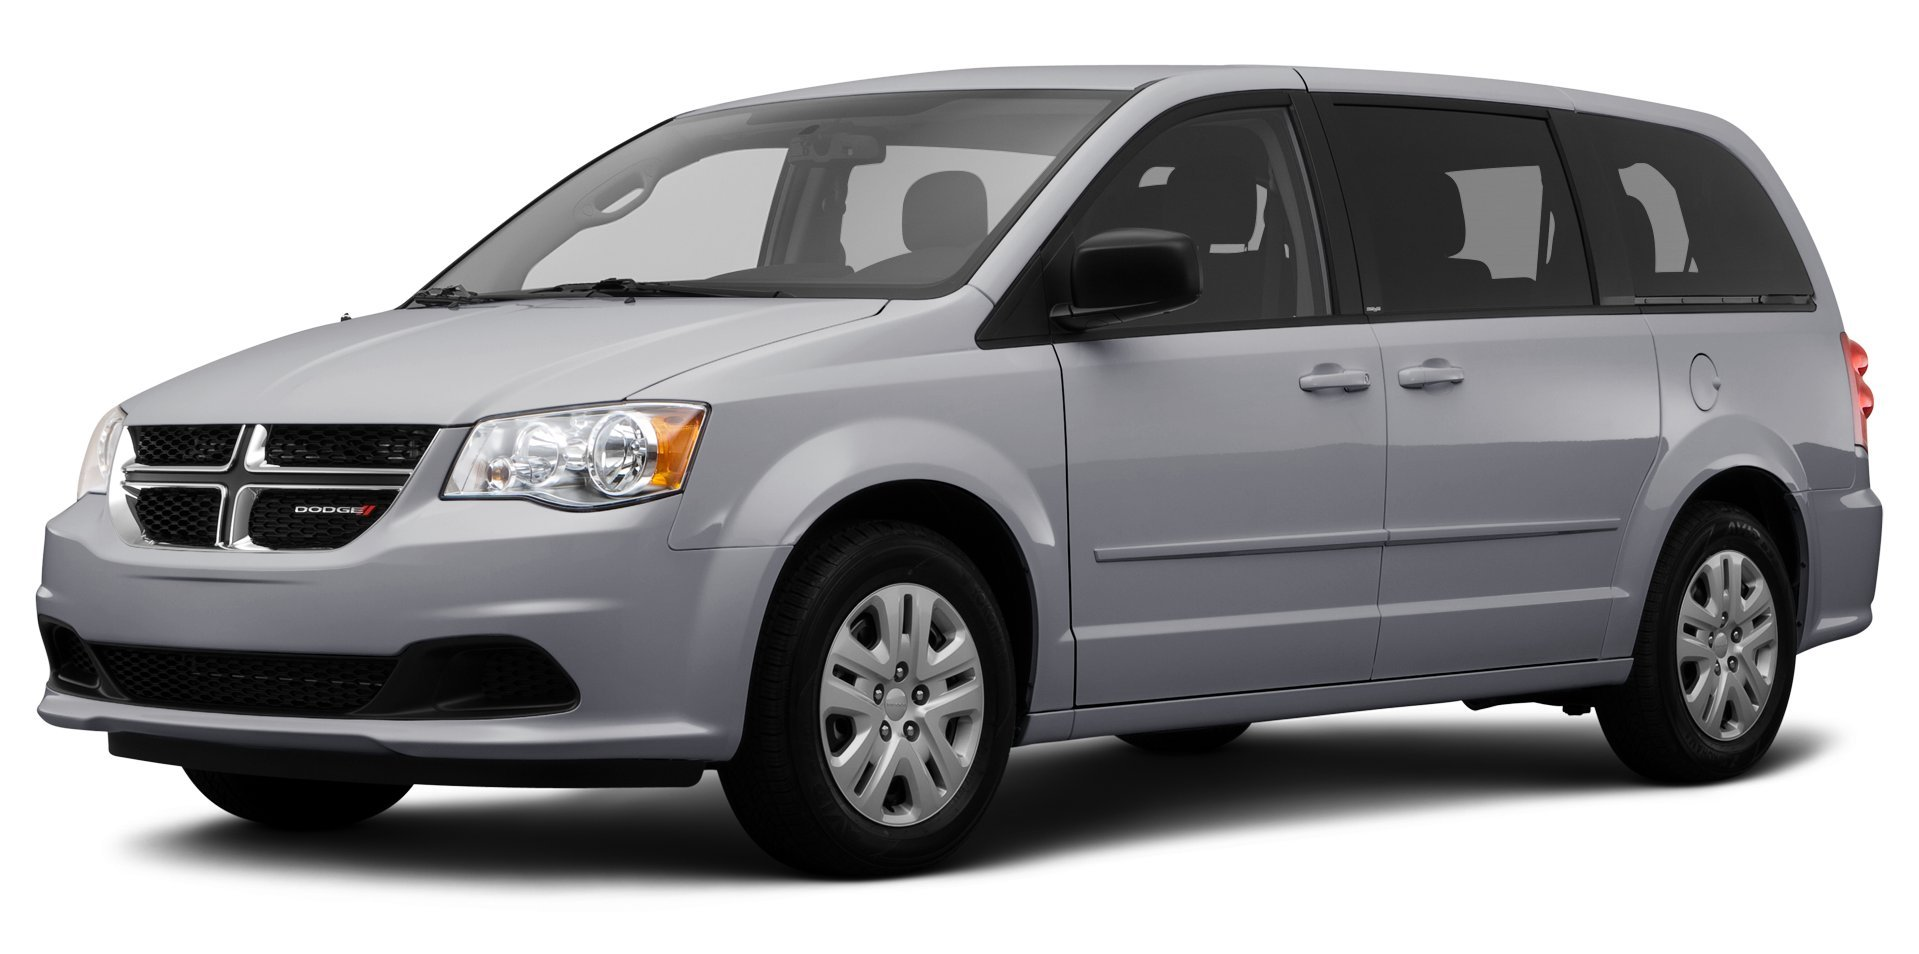 71HP60rPG2L amazon com 2014 dodge grand caravan reviews, images, and specs 2014 grand caravan trailer wiring harness at eliteediting.co